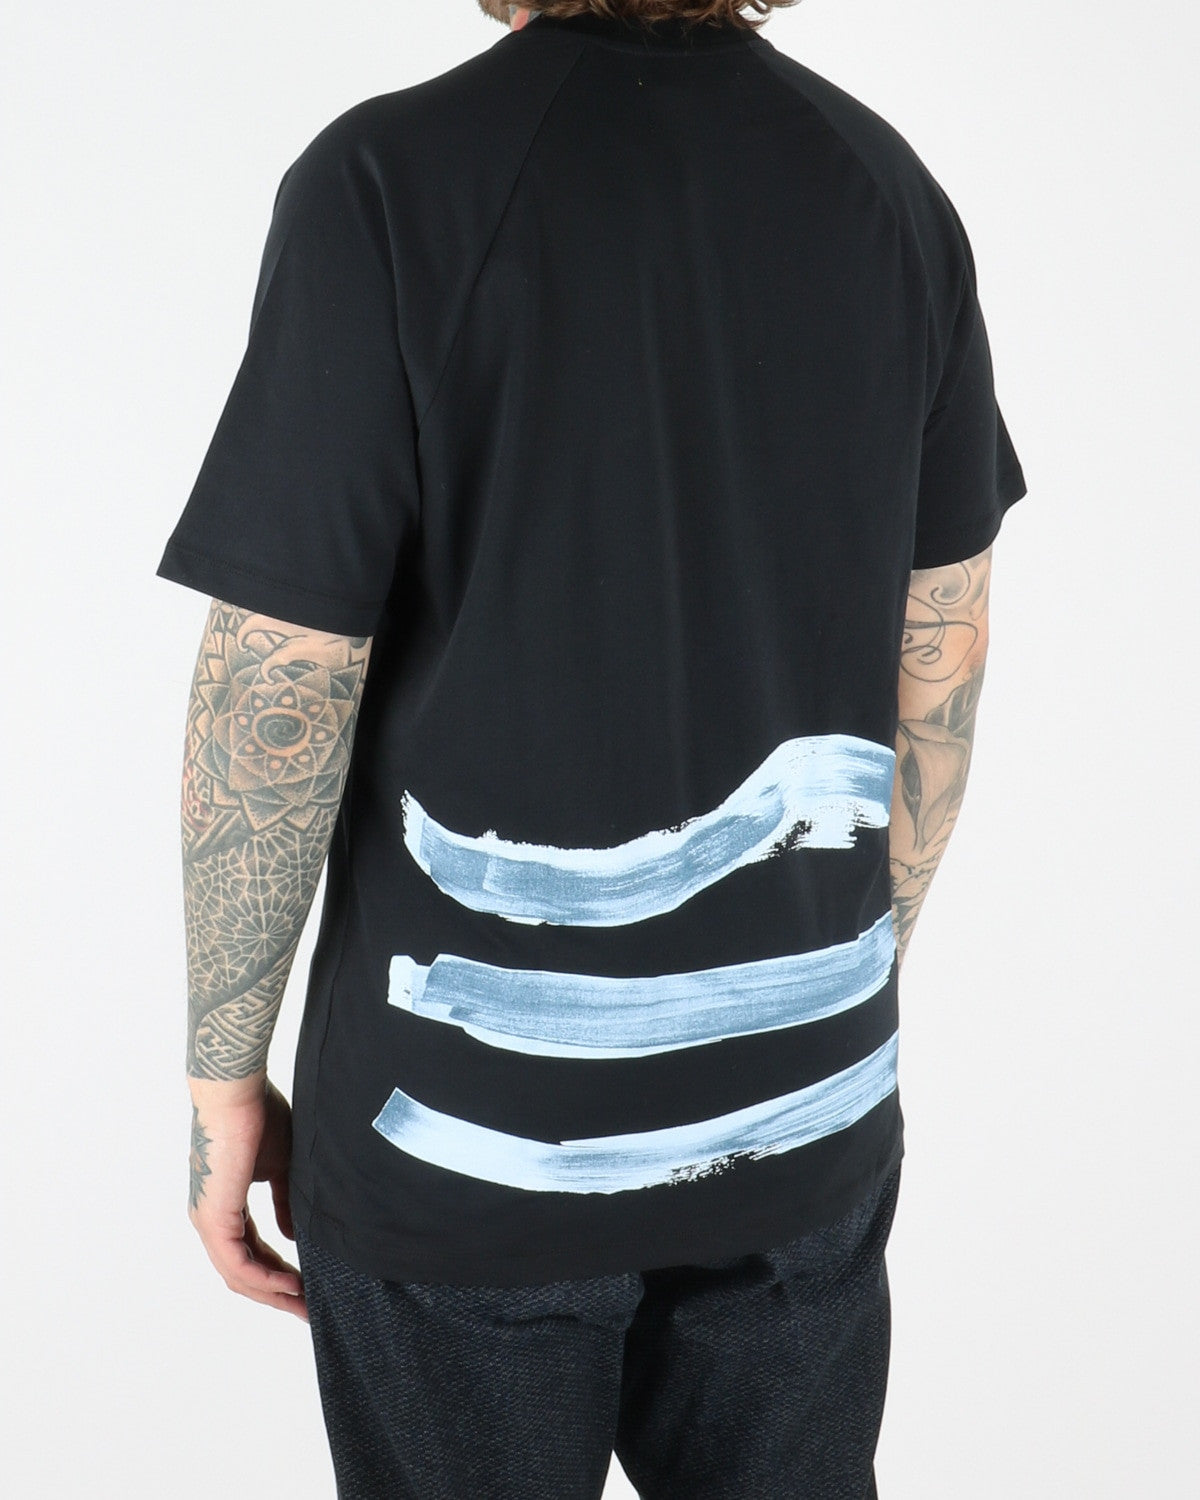 journal clothing_tides t-shirt_black_view_1_3